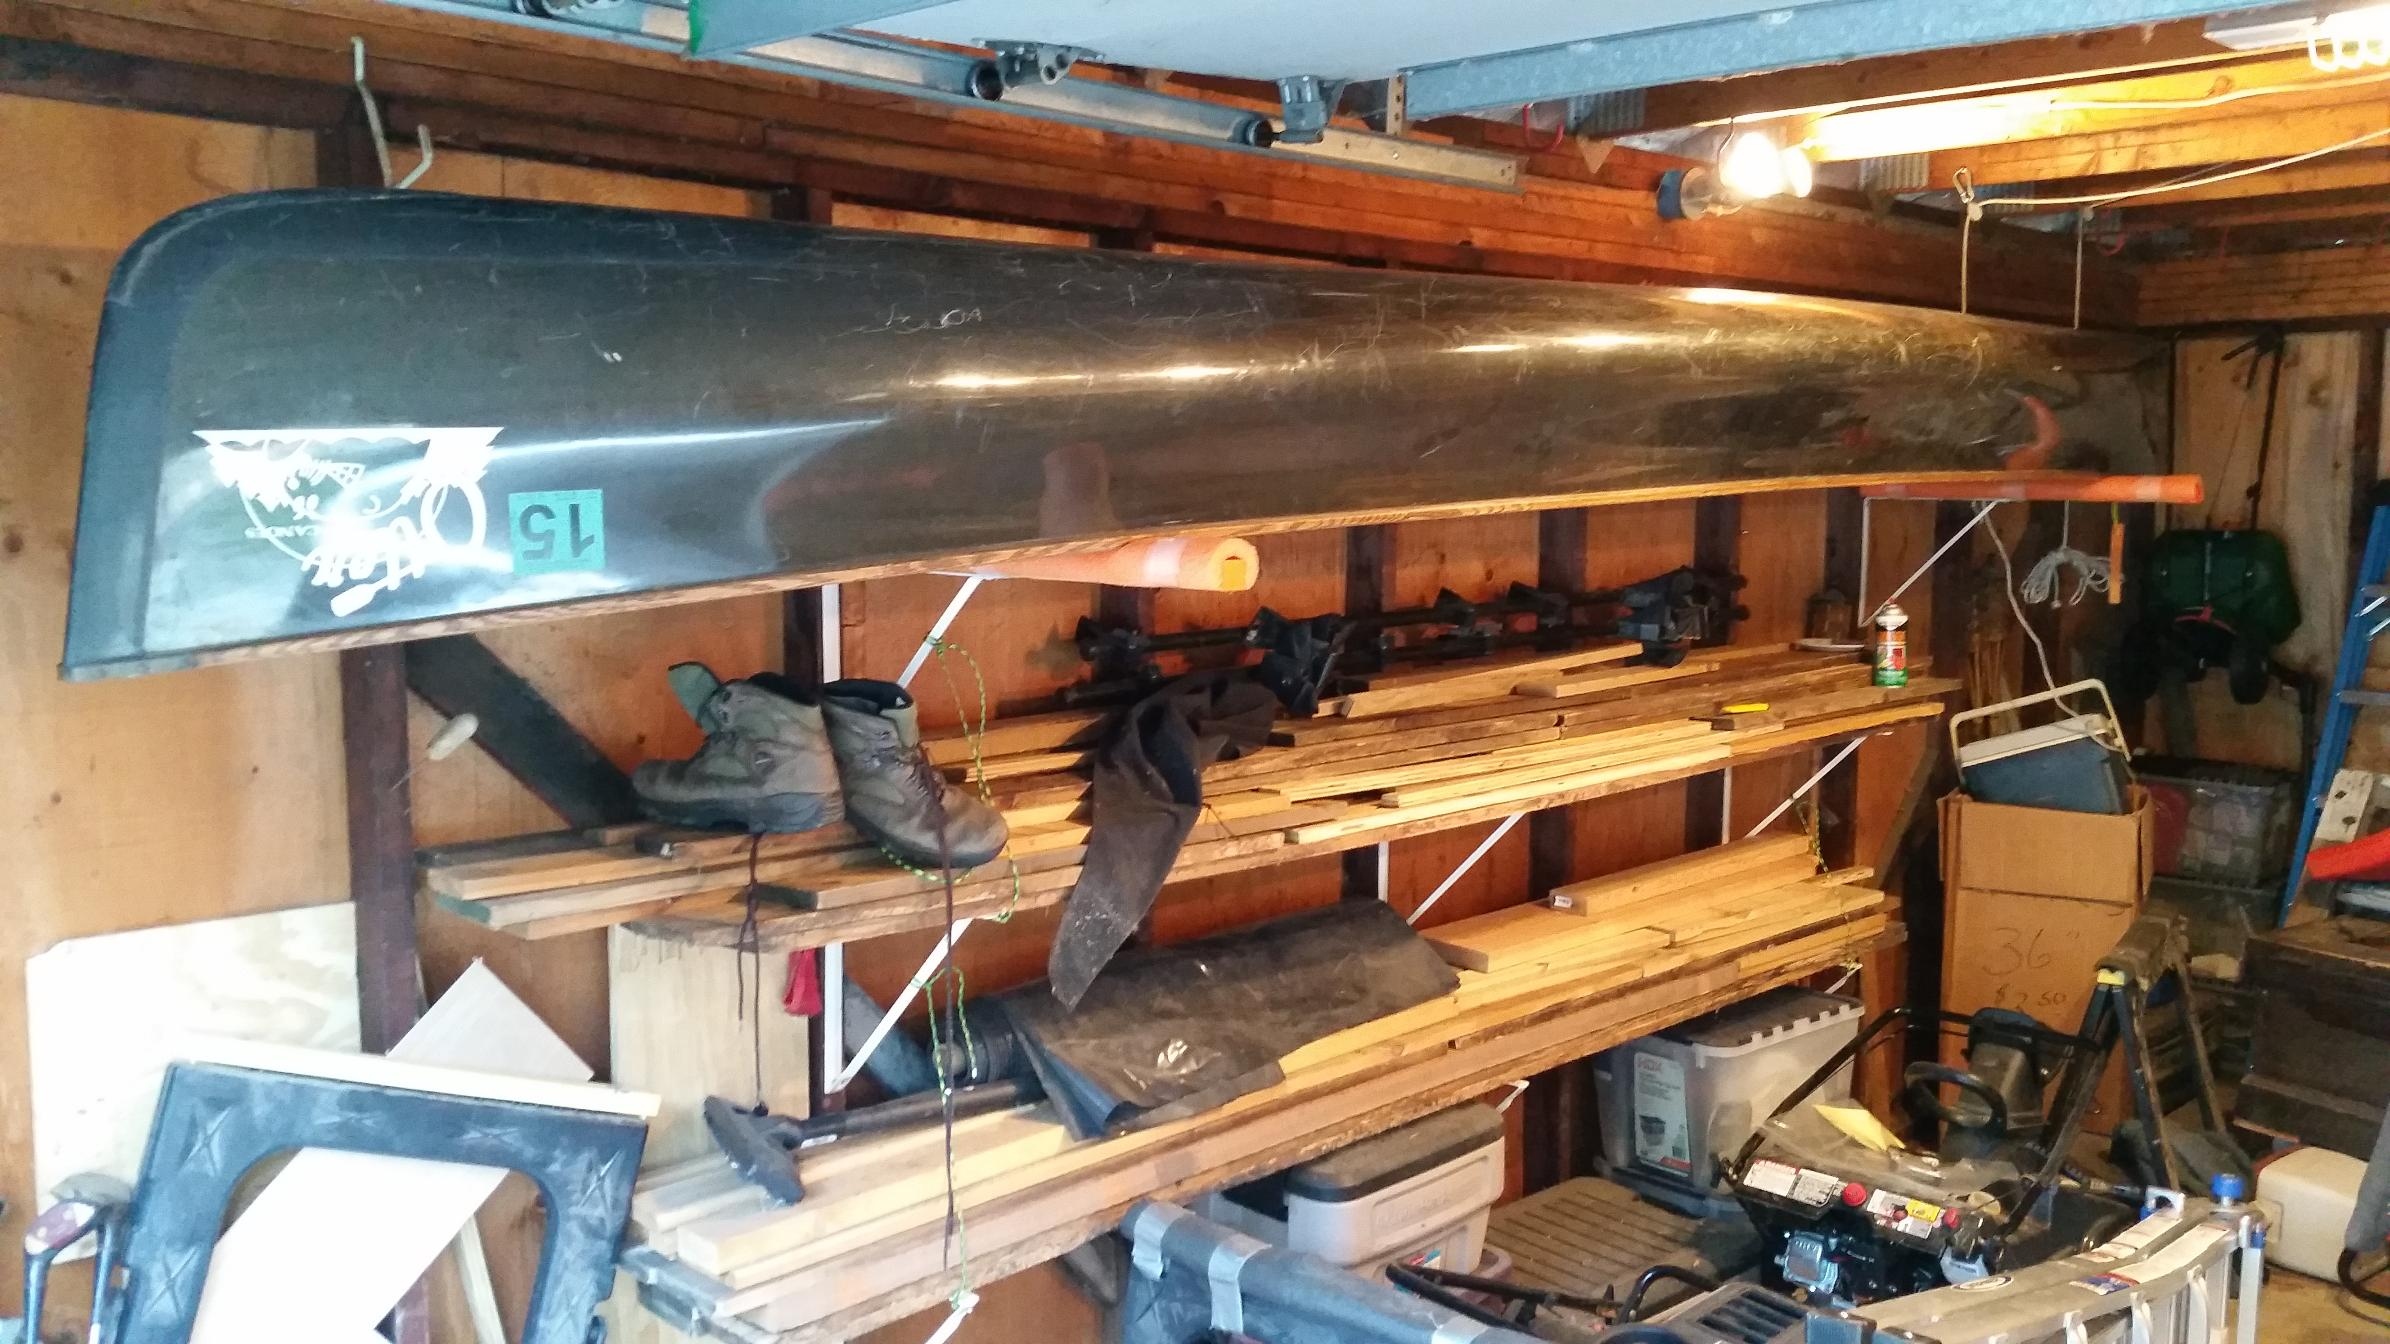 and paddle gator garage overhead product power kayak storage lbs system lift sports canoe model